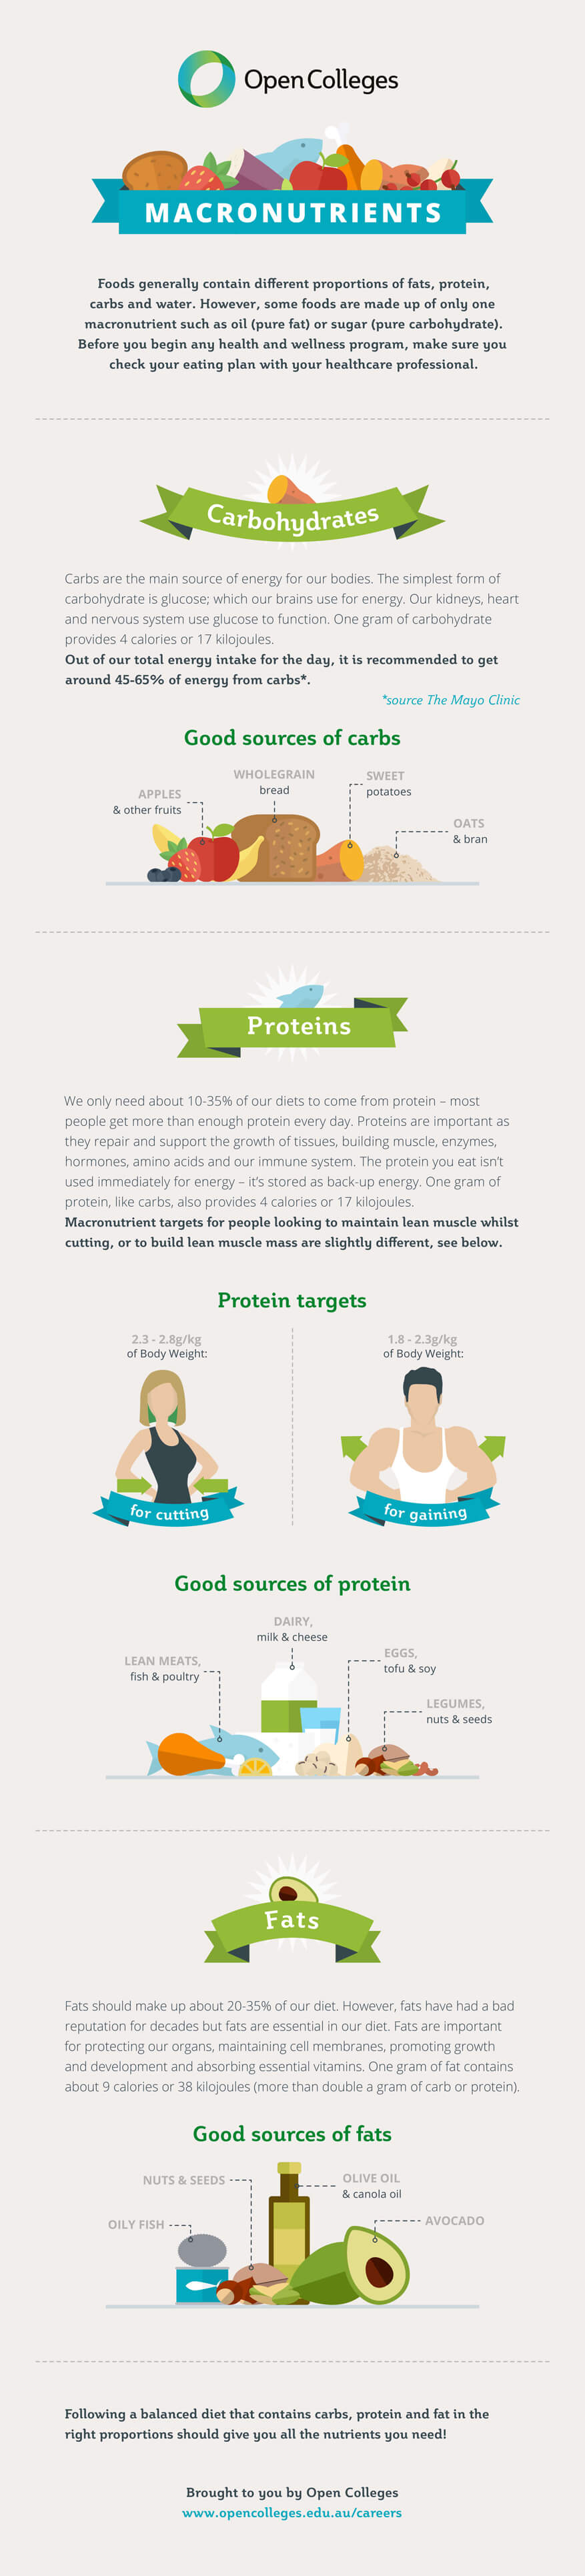 How-To-Eat-The-Right-Ratio-Of-Macronutrients-infographic-plaza